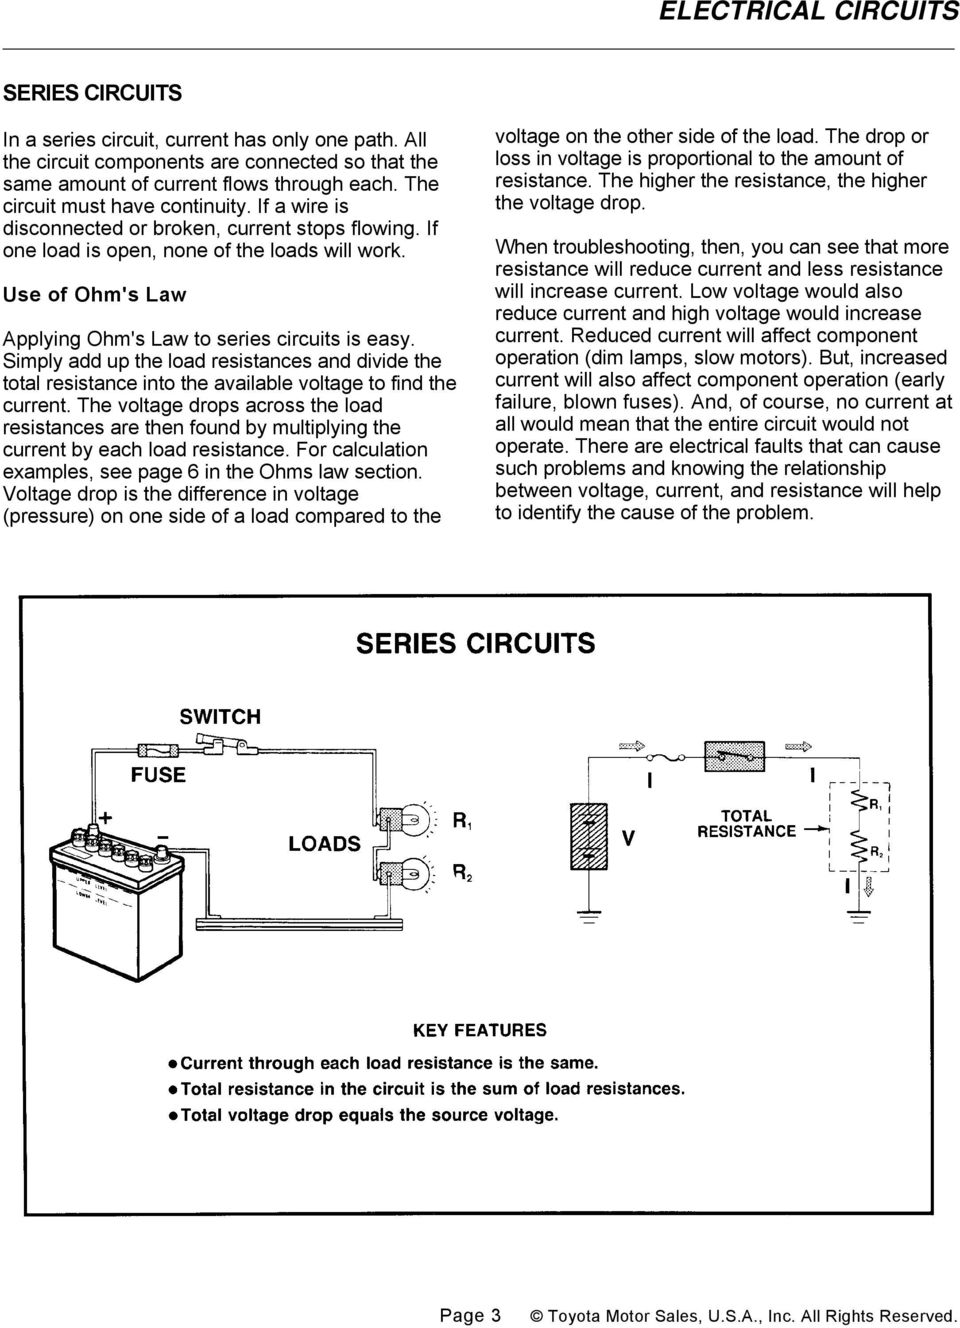 Electrical Circuits Pdf House Wiring Voltage Formula Simply Add Up The Load Resistances And Divide Total Resistance Into Available To